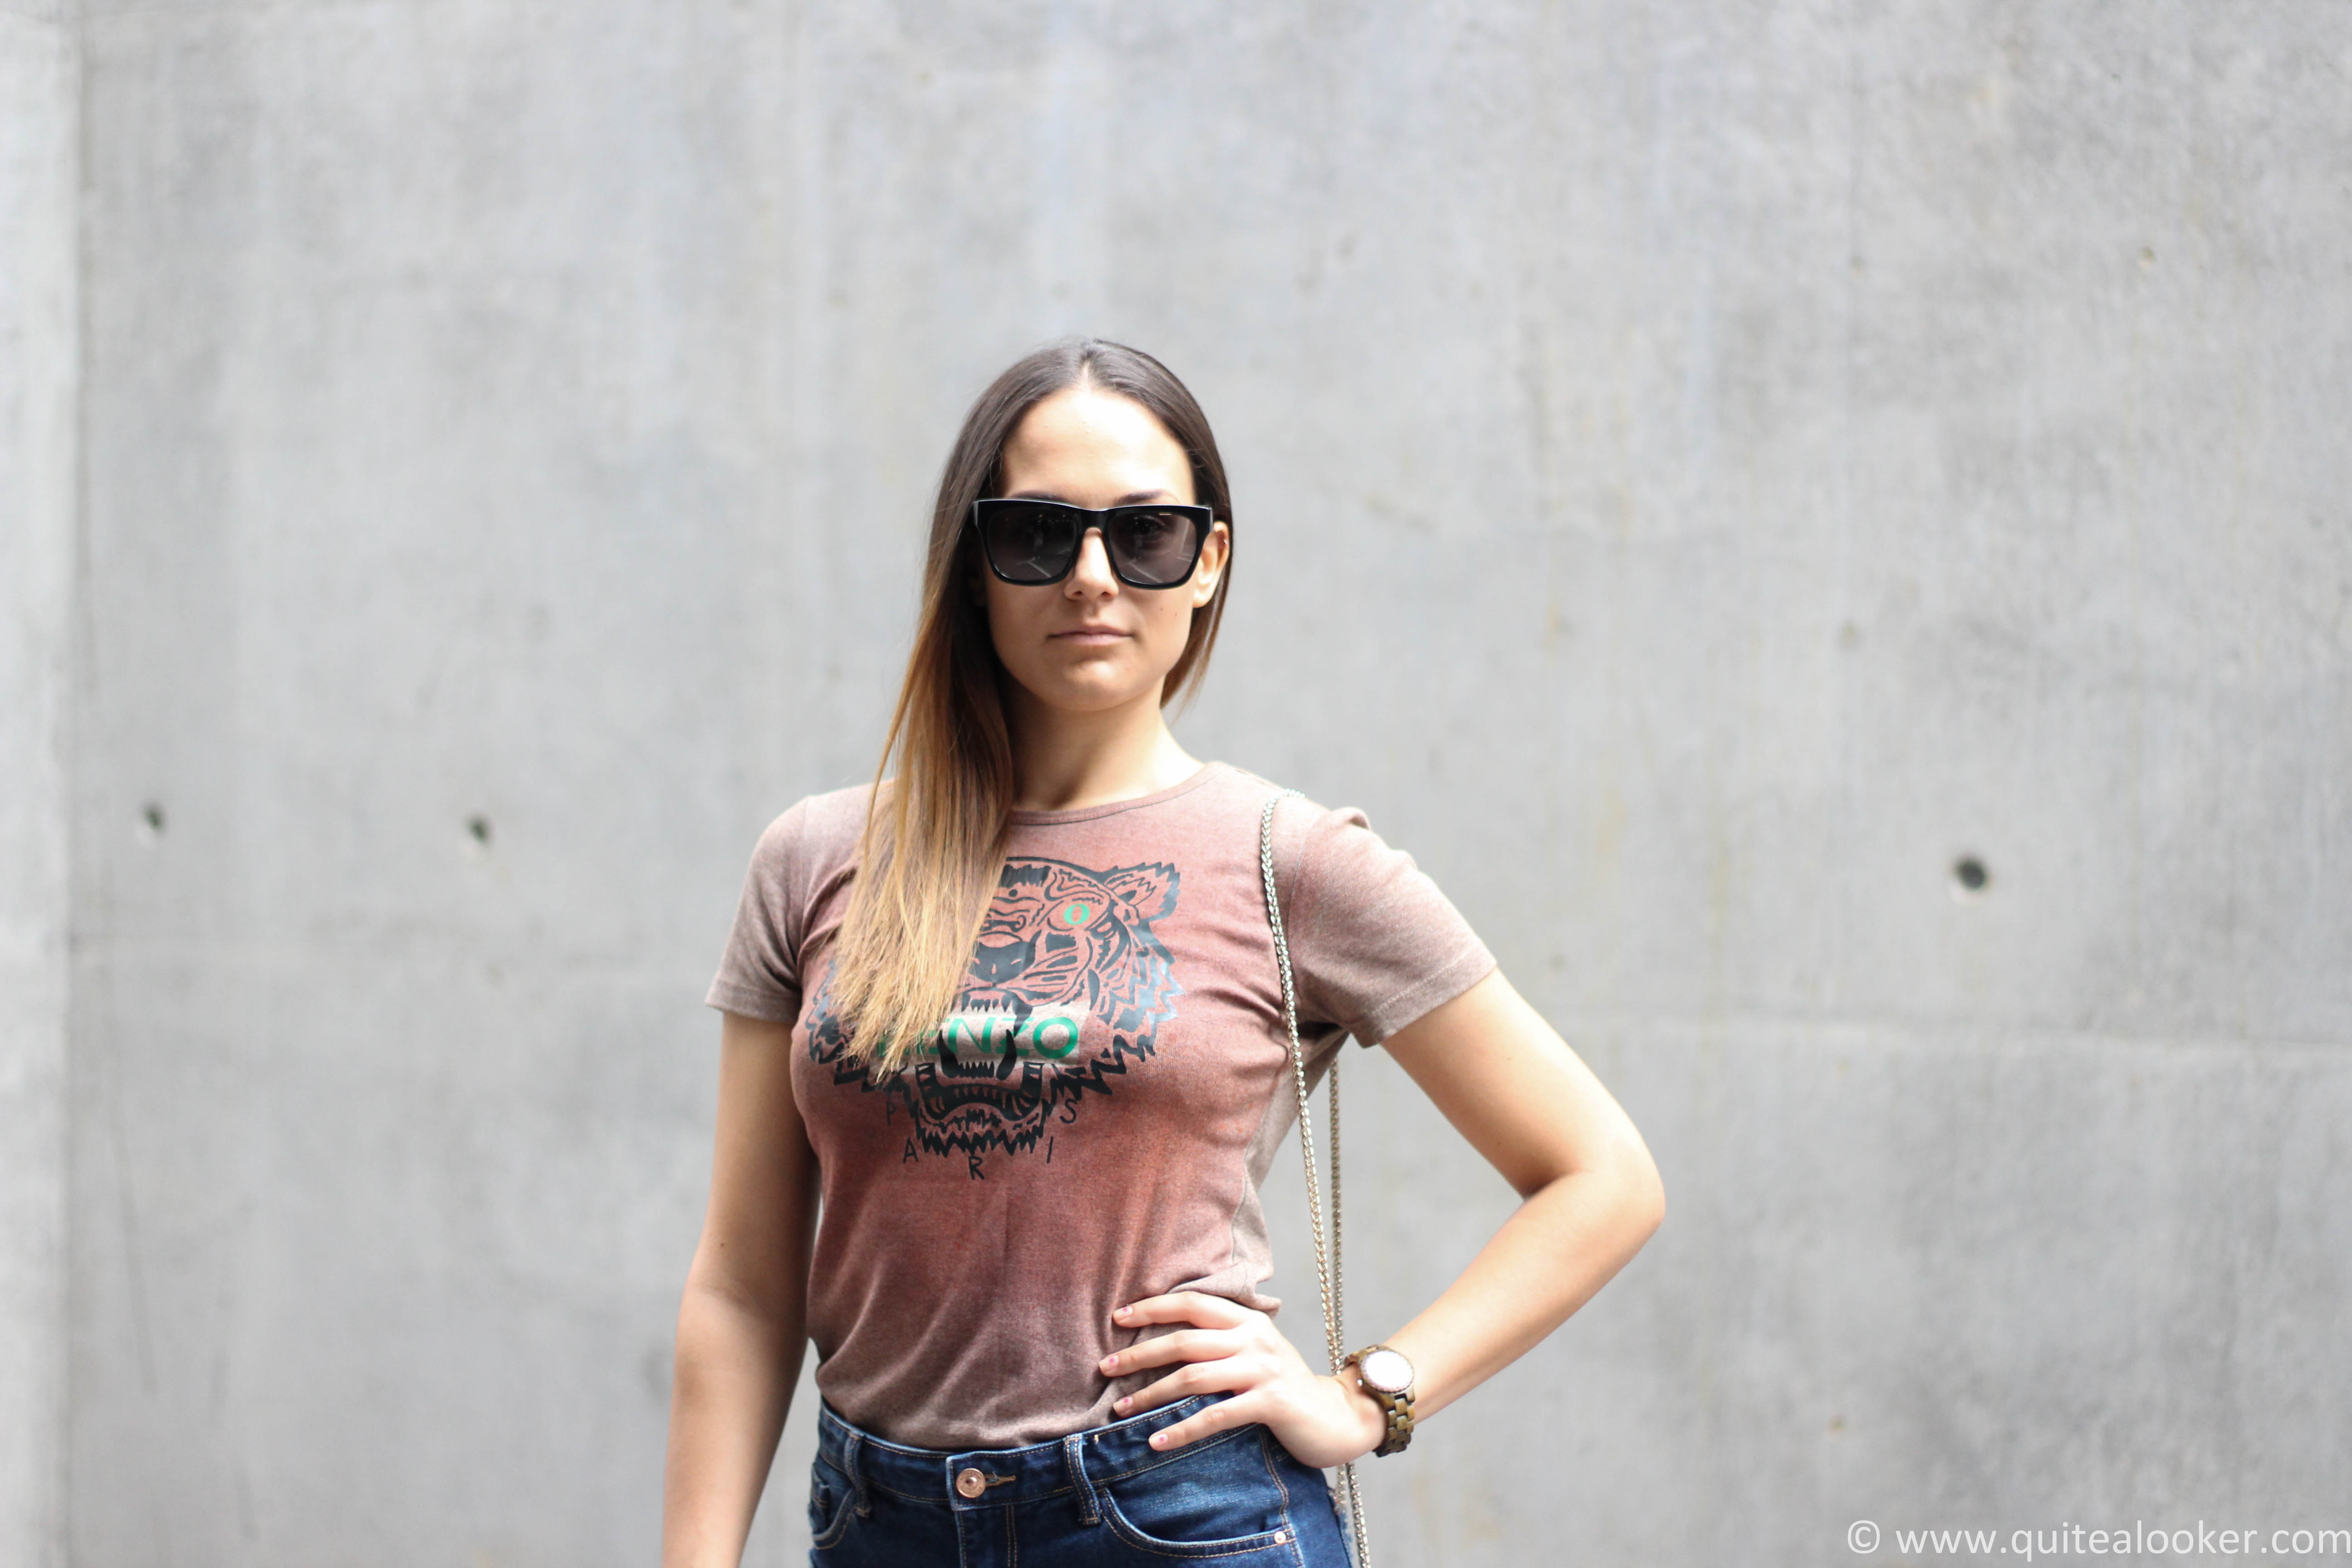 adidas stan smith zig zag sneakers summer outfit denim shorts stradivarius ss16 kenzo tshirt polette sunglasses bulgarian fashion blogger michaella quite a looker www.quitealooker.com